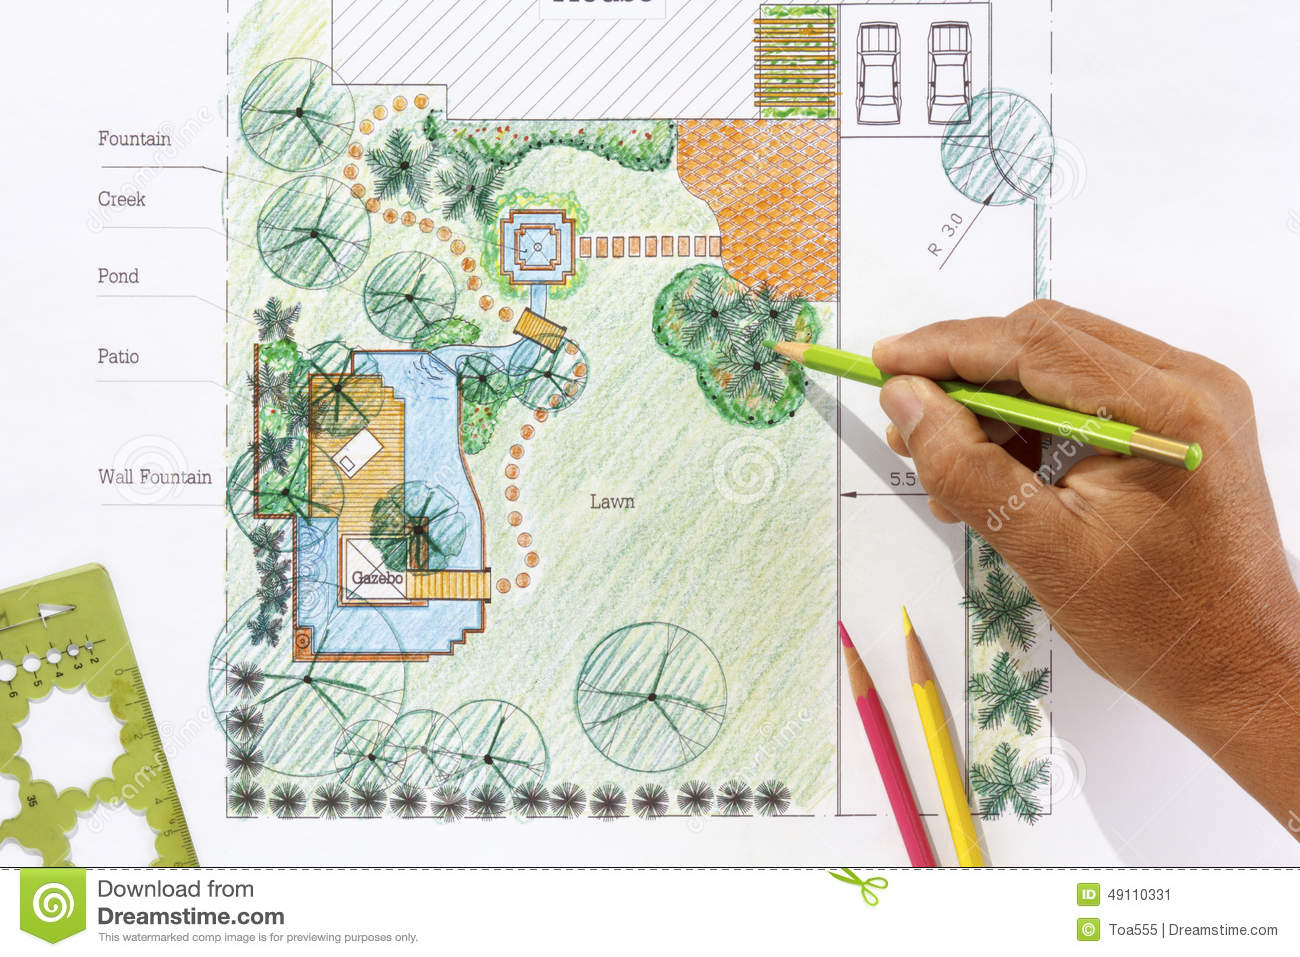 Landscape architect design water garden plans stock photo for Backyard landscape layout